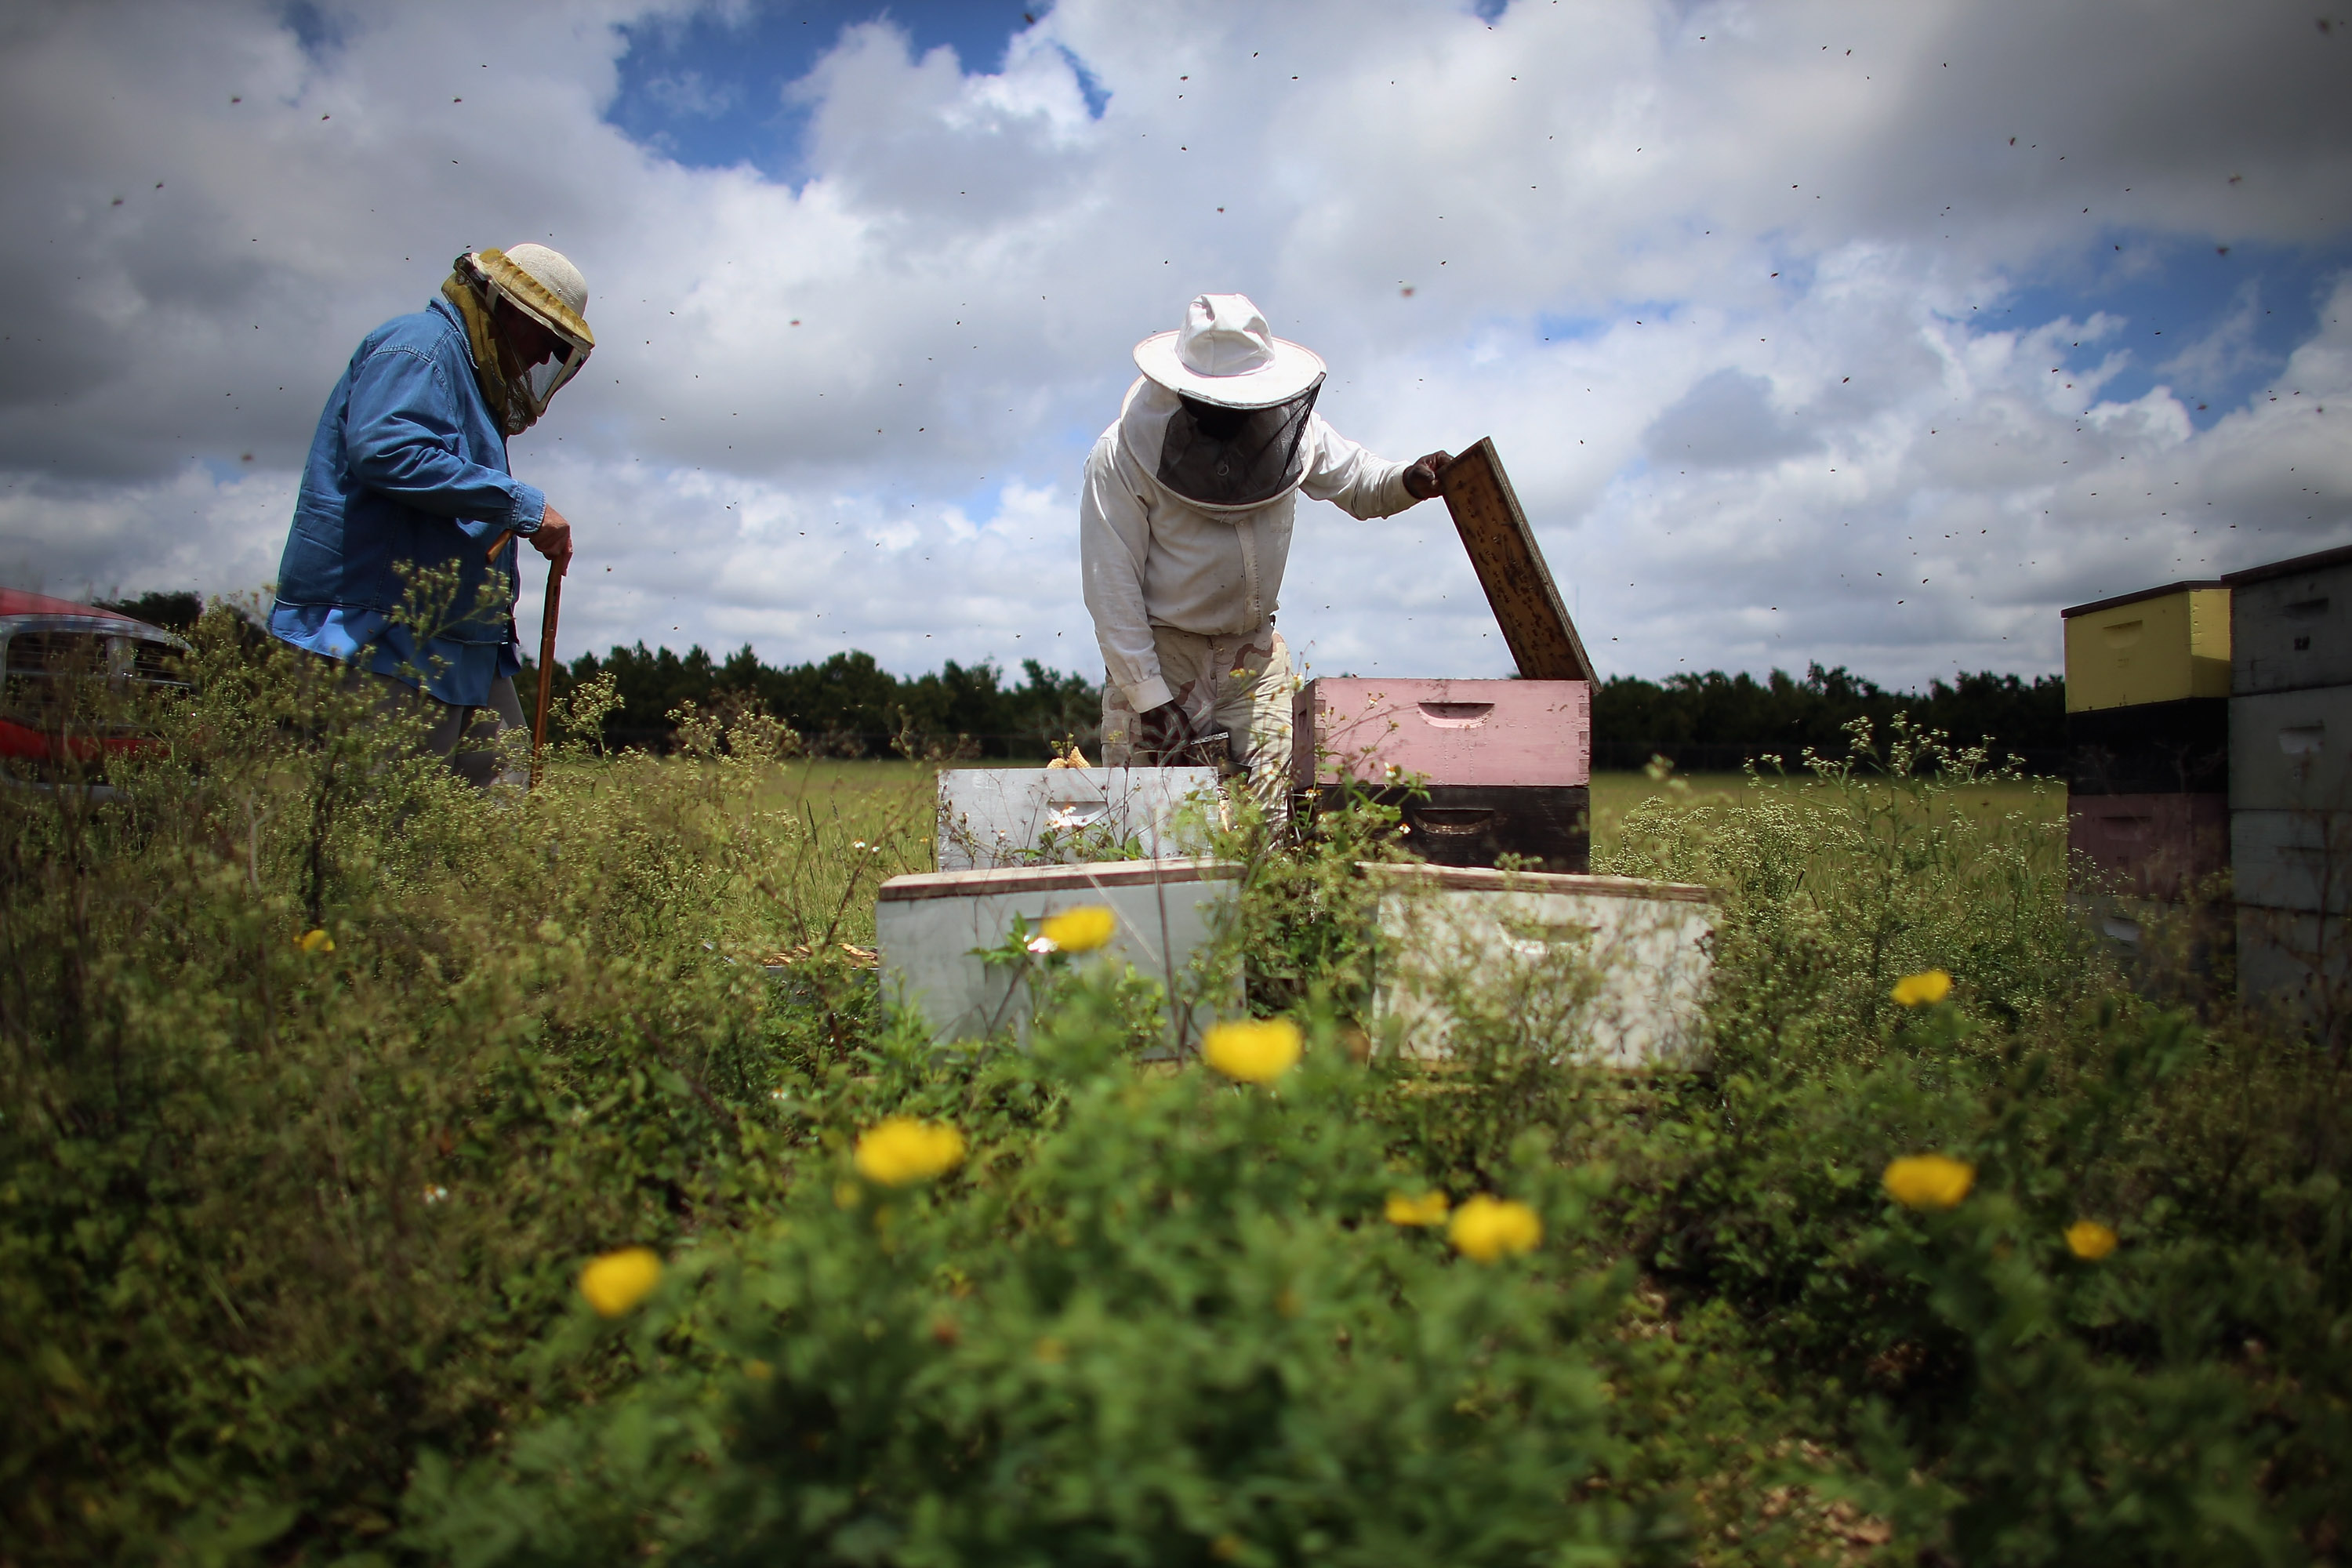 What's killing the honey bees? Mystery may be solved - CBS News